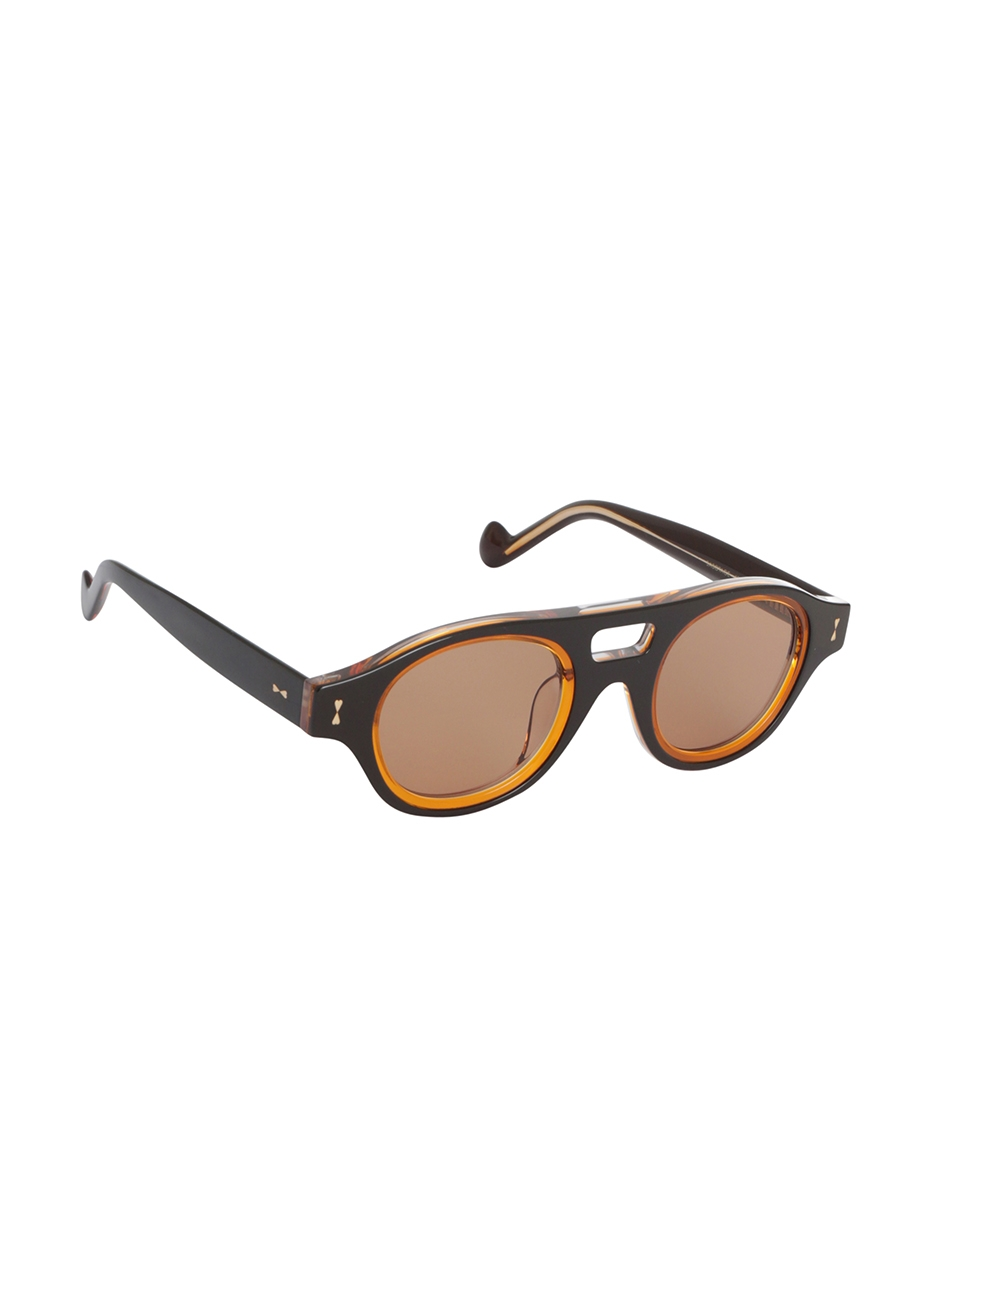 Sabotage Rounded Sunglasses